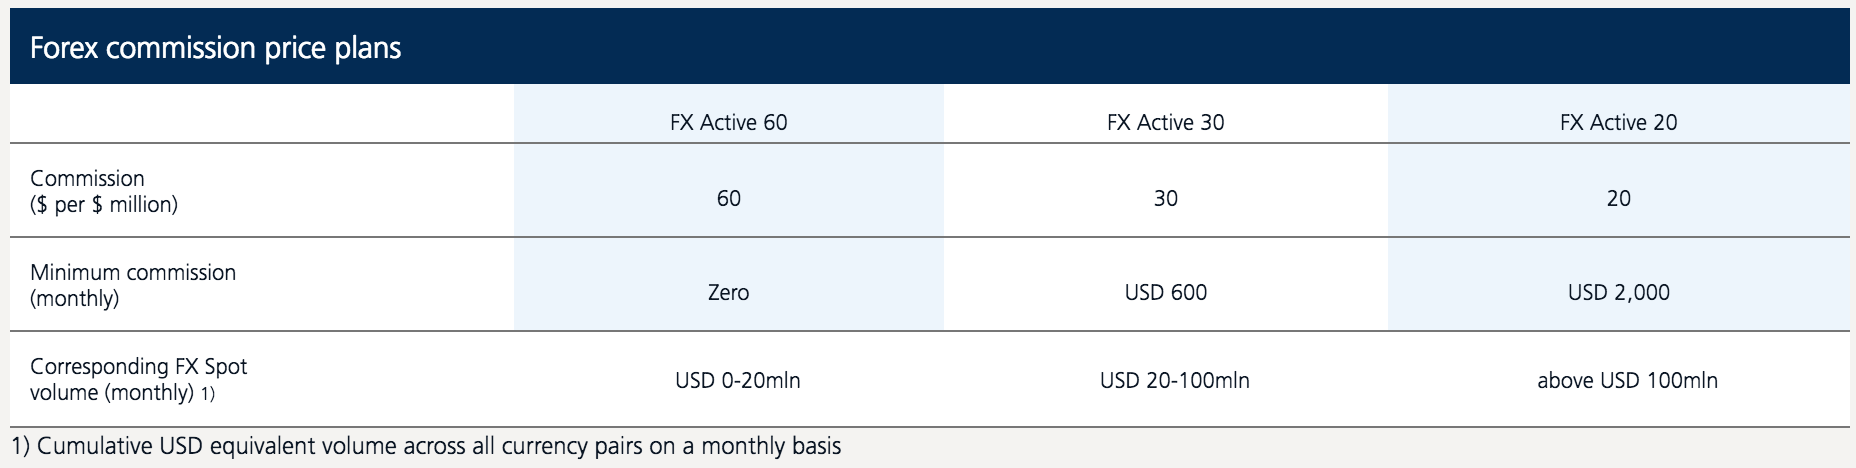 SaxoBank Commission Based Pricing Table